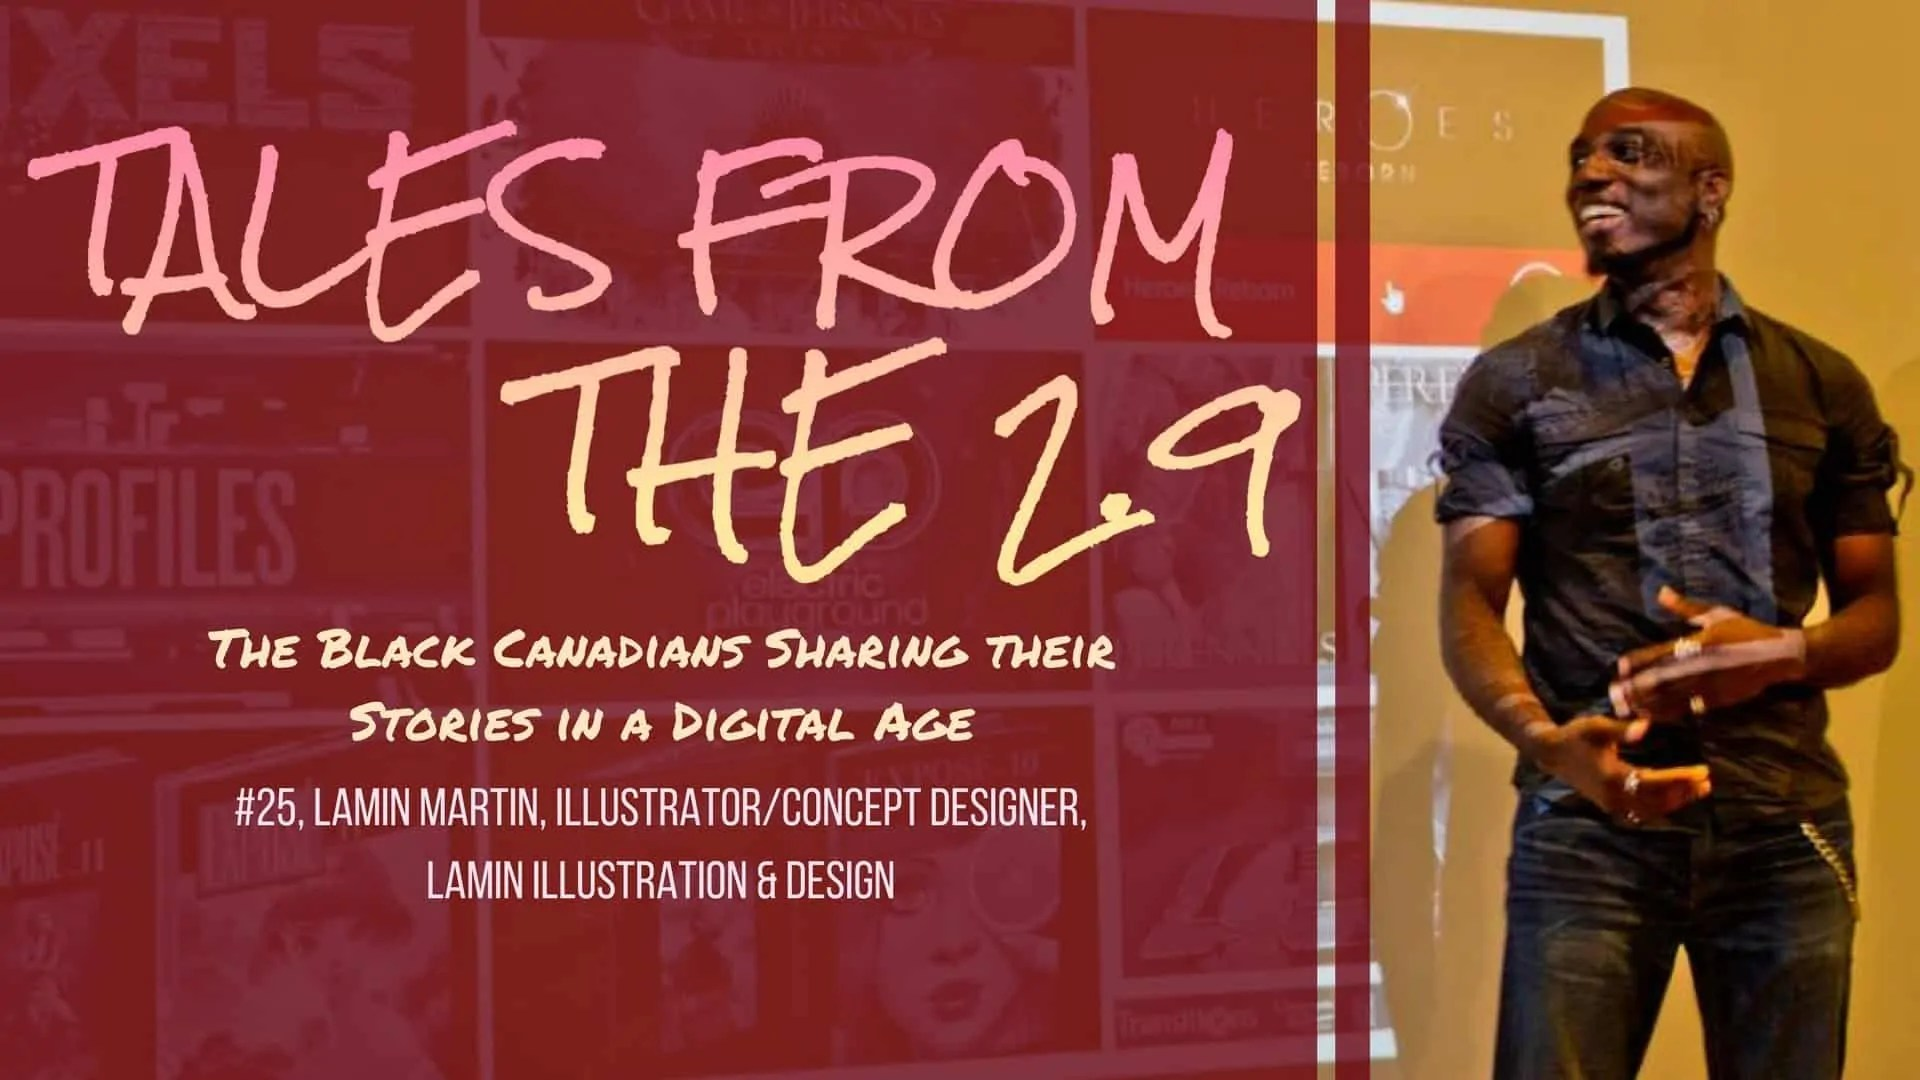 Tales from the 2.9 — The Black Canadians Sharing their Stories in a Digital Age — Vol. 2 #25, Lamin Martin, IllustratorConcept Designer, Lamin illustration & Design (Featured Image)